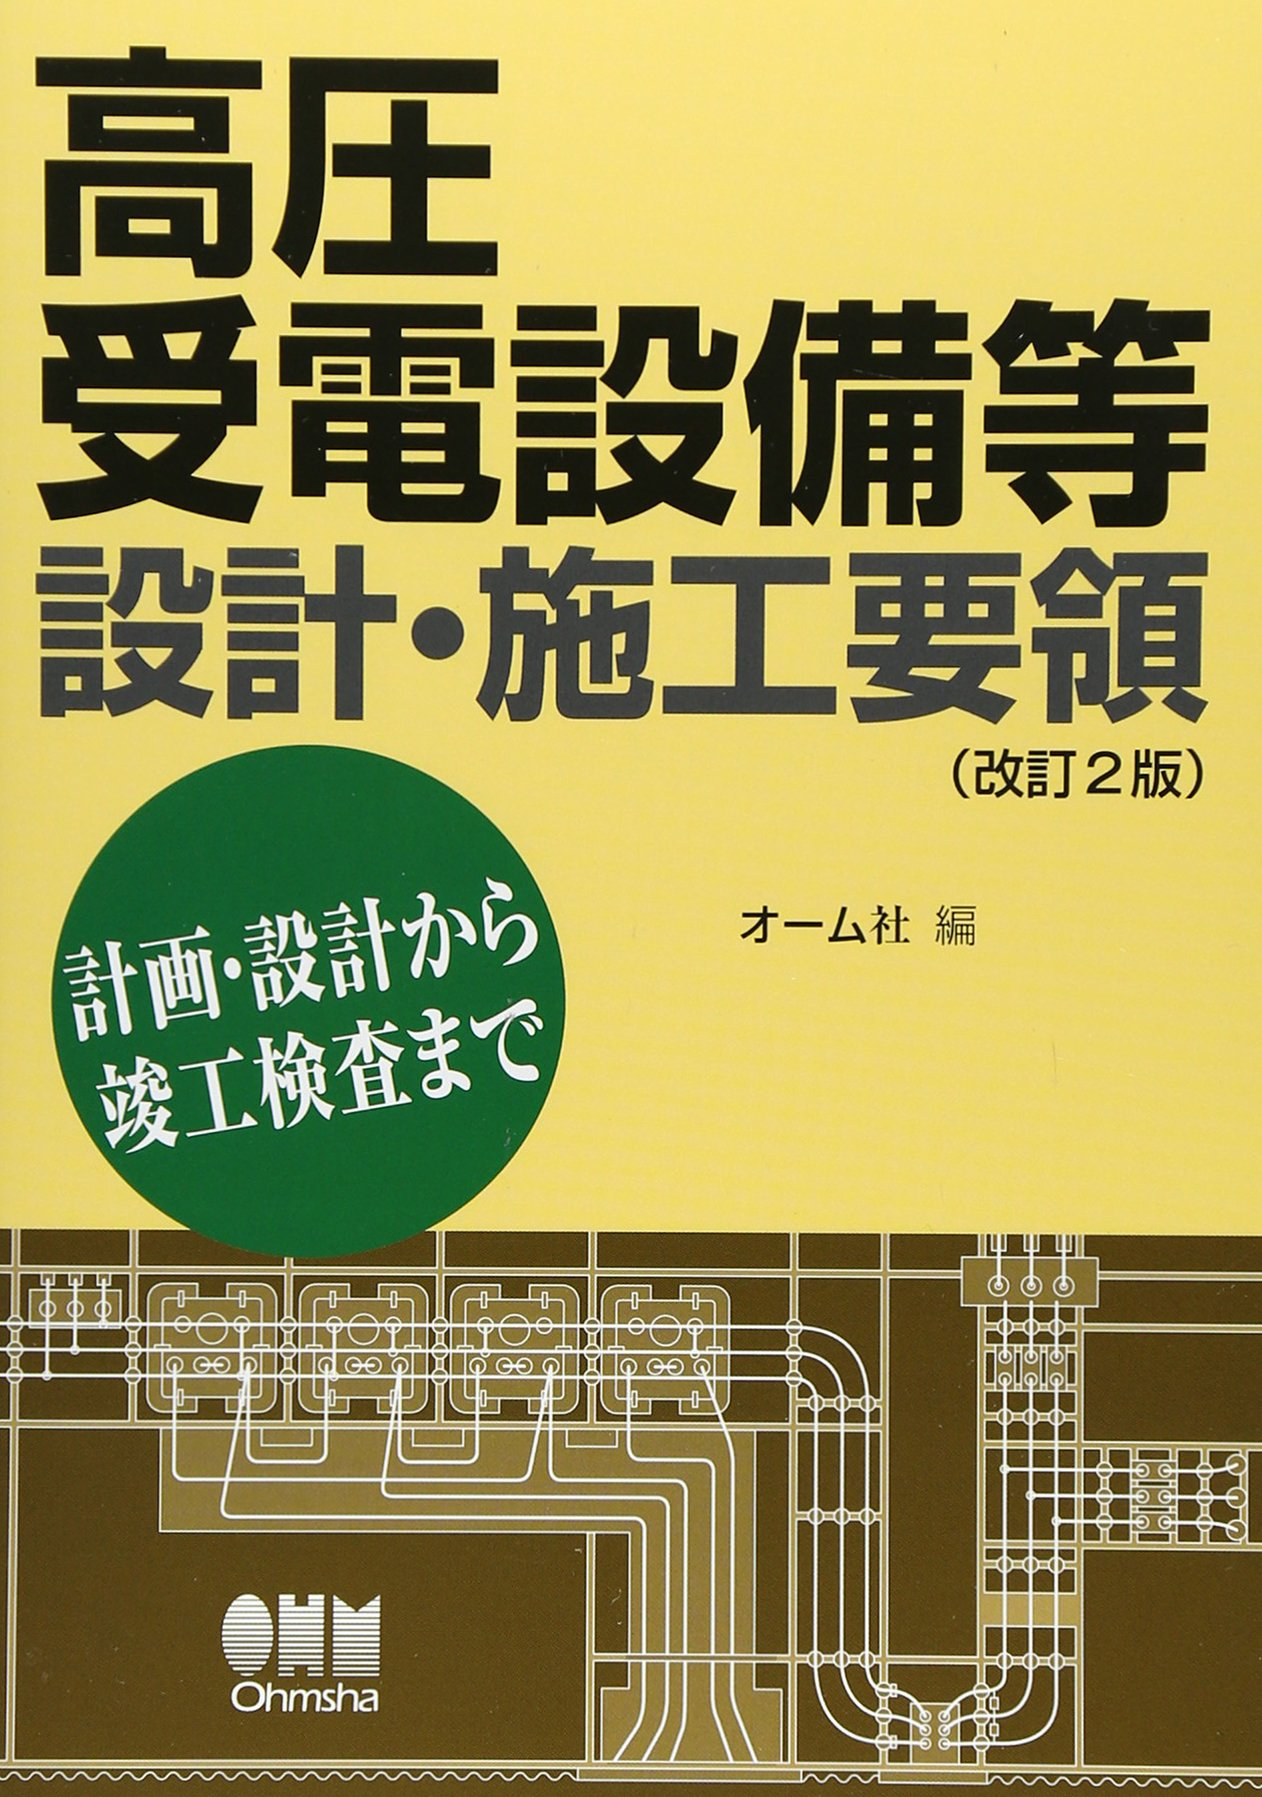 Download High voltage power receiving equipment design and construction guidelines (2nd revised edition) (2012) ISBN: 4274504107 [Japanese Import] ebook